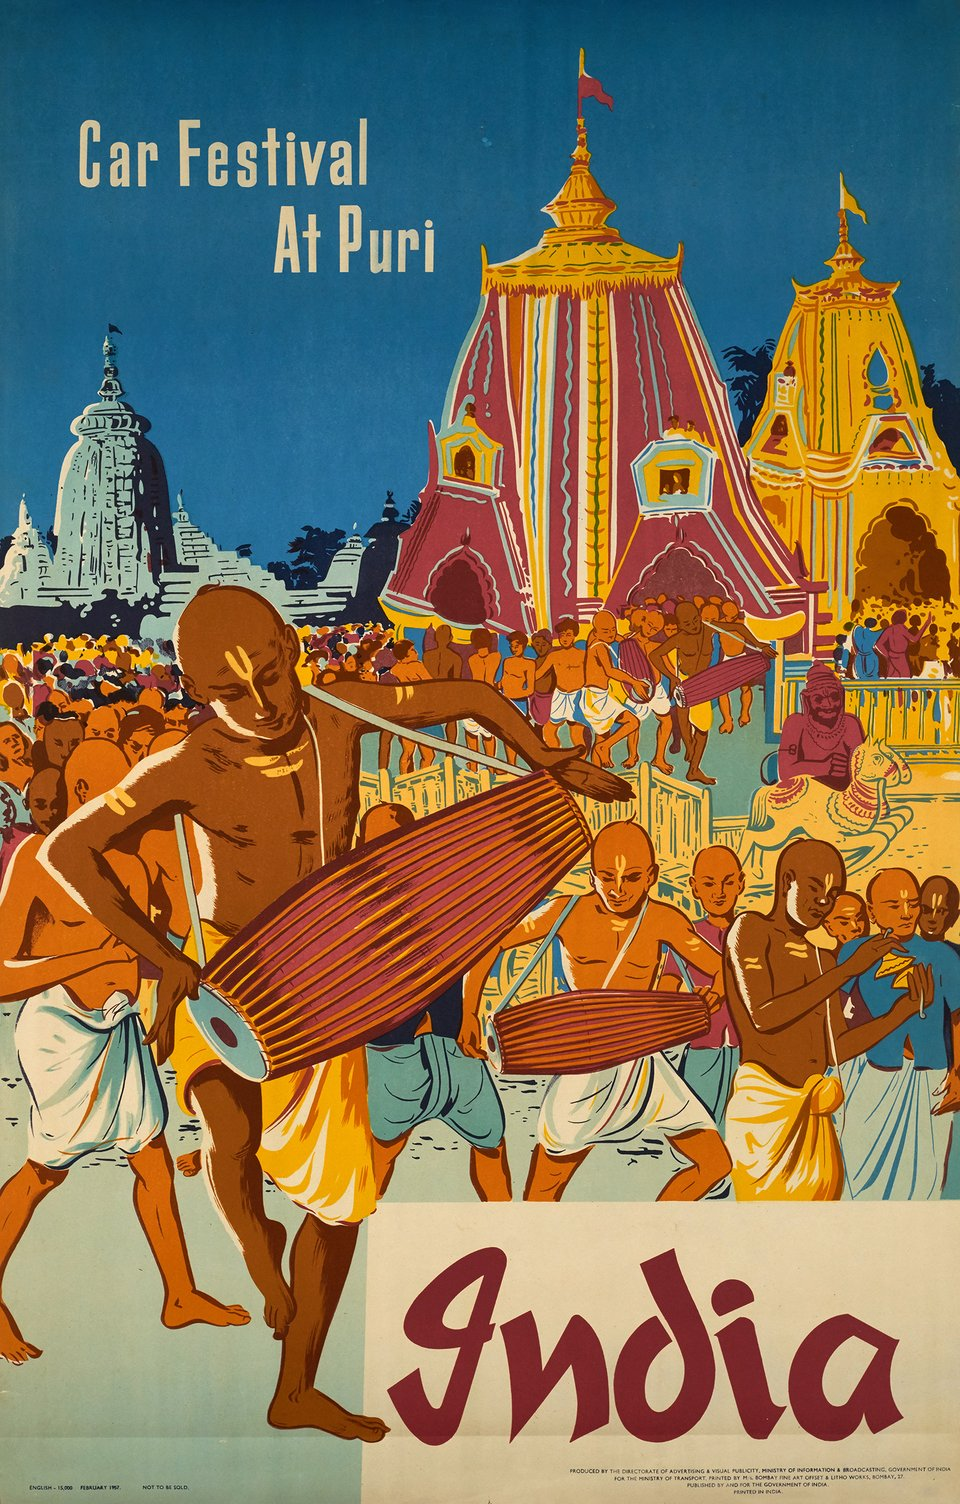 Car festival at Puri, India – Affiche ancienne –  ANONYME – 1957